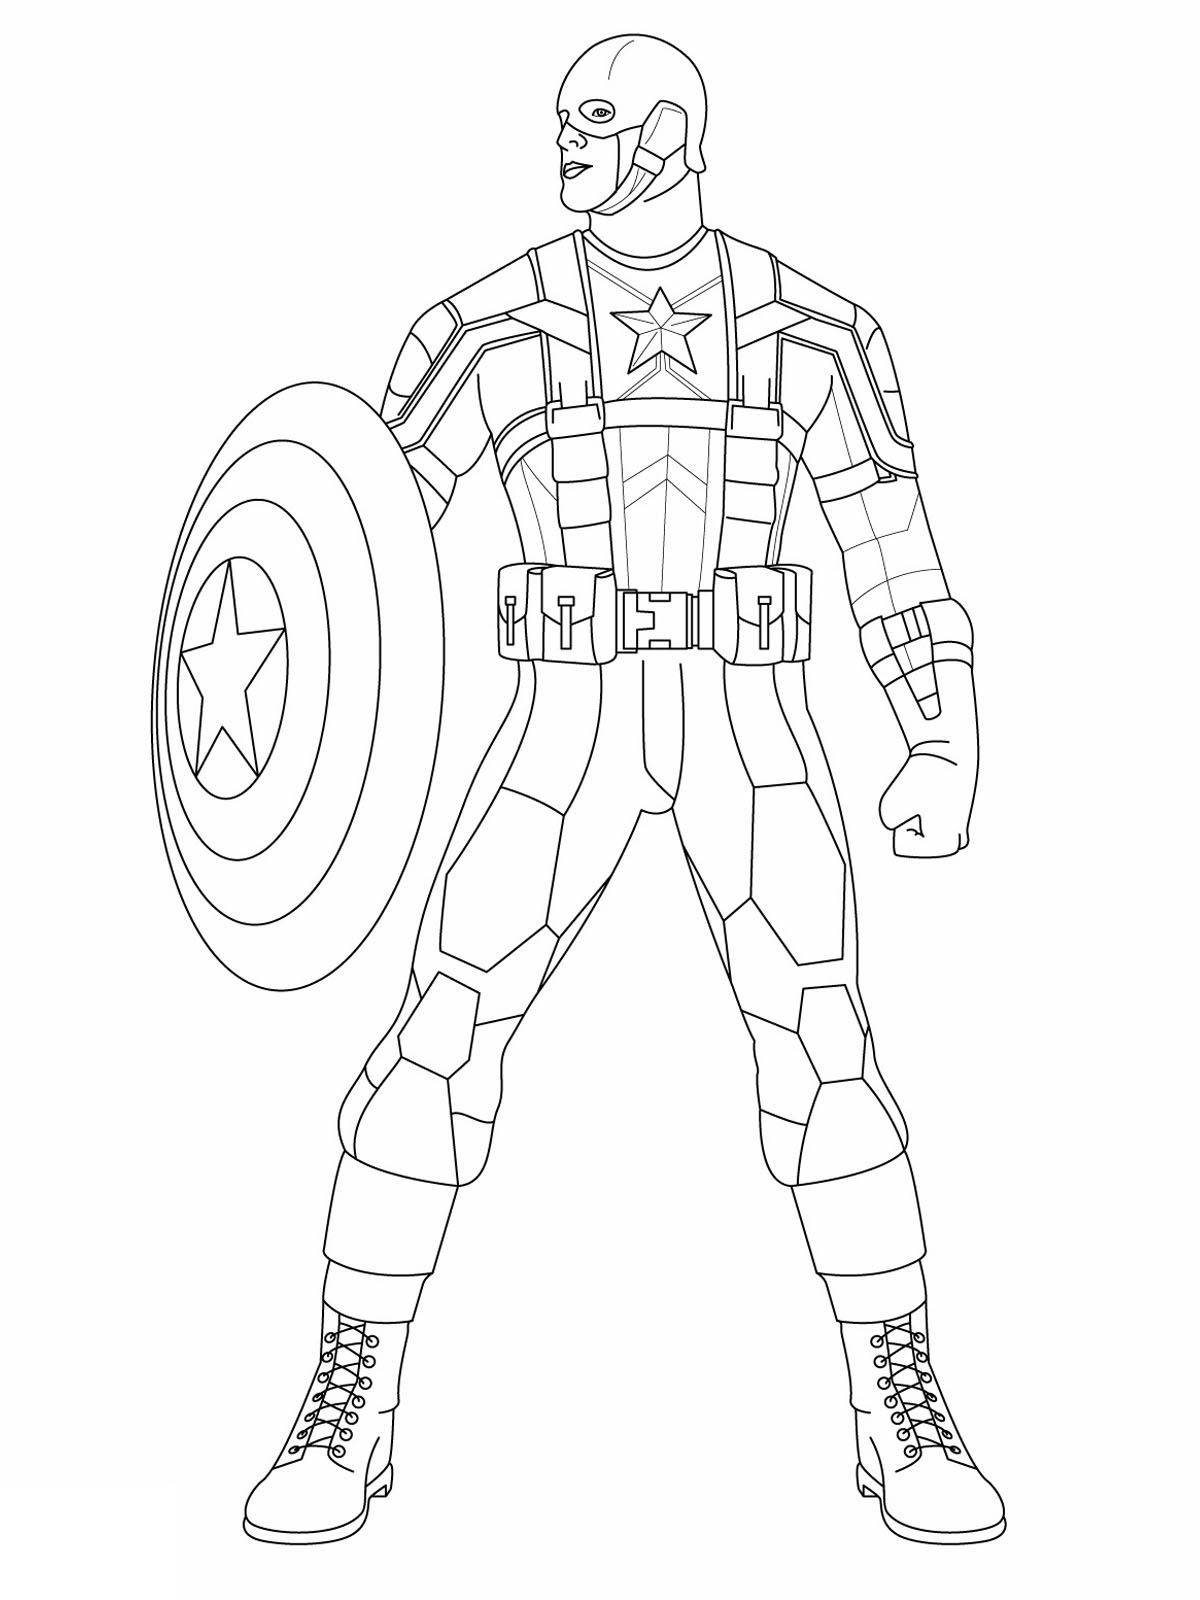 Captain America - Captain America Kids Coloring Pages serapportantà Coloriage Captain America